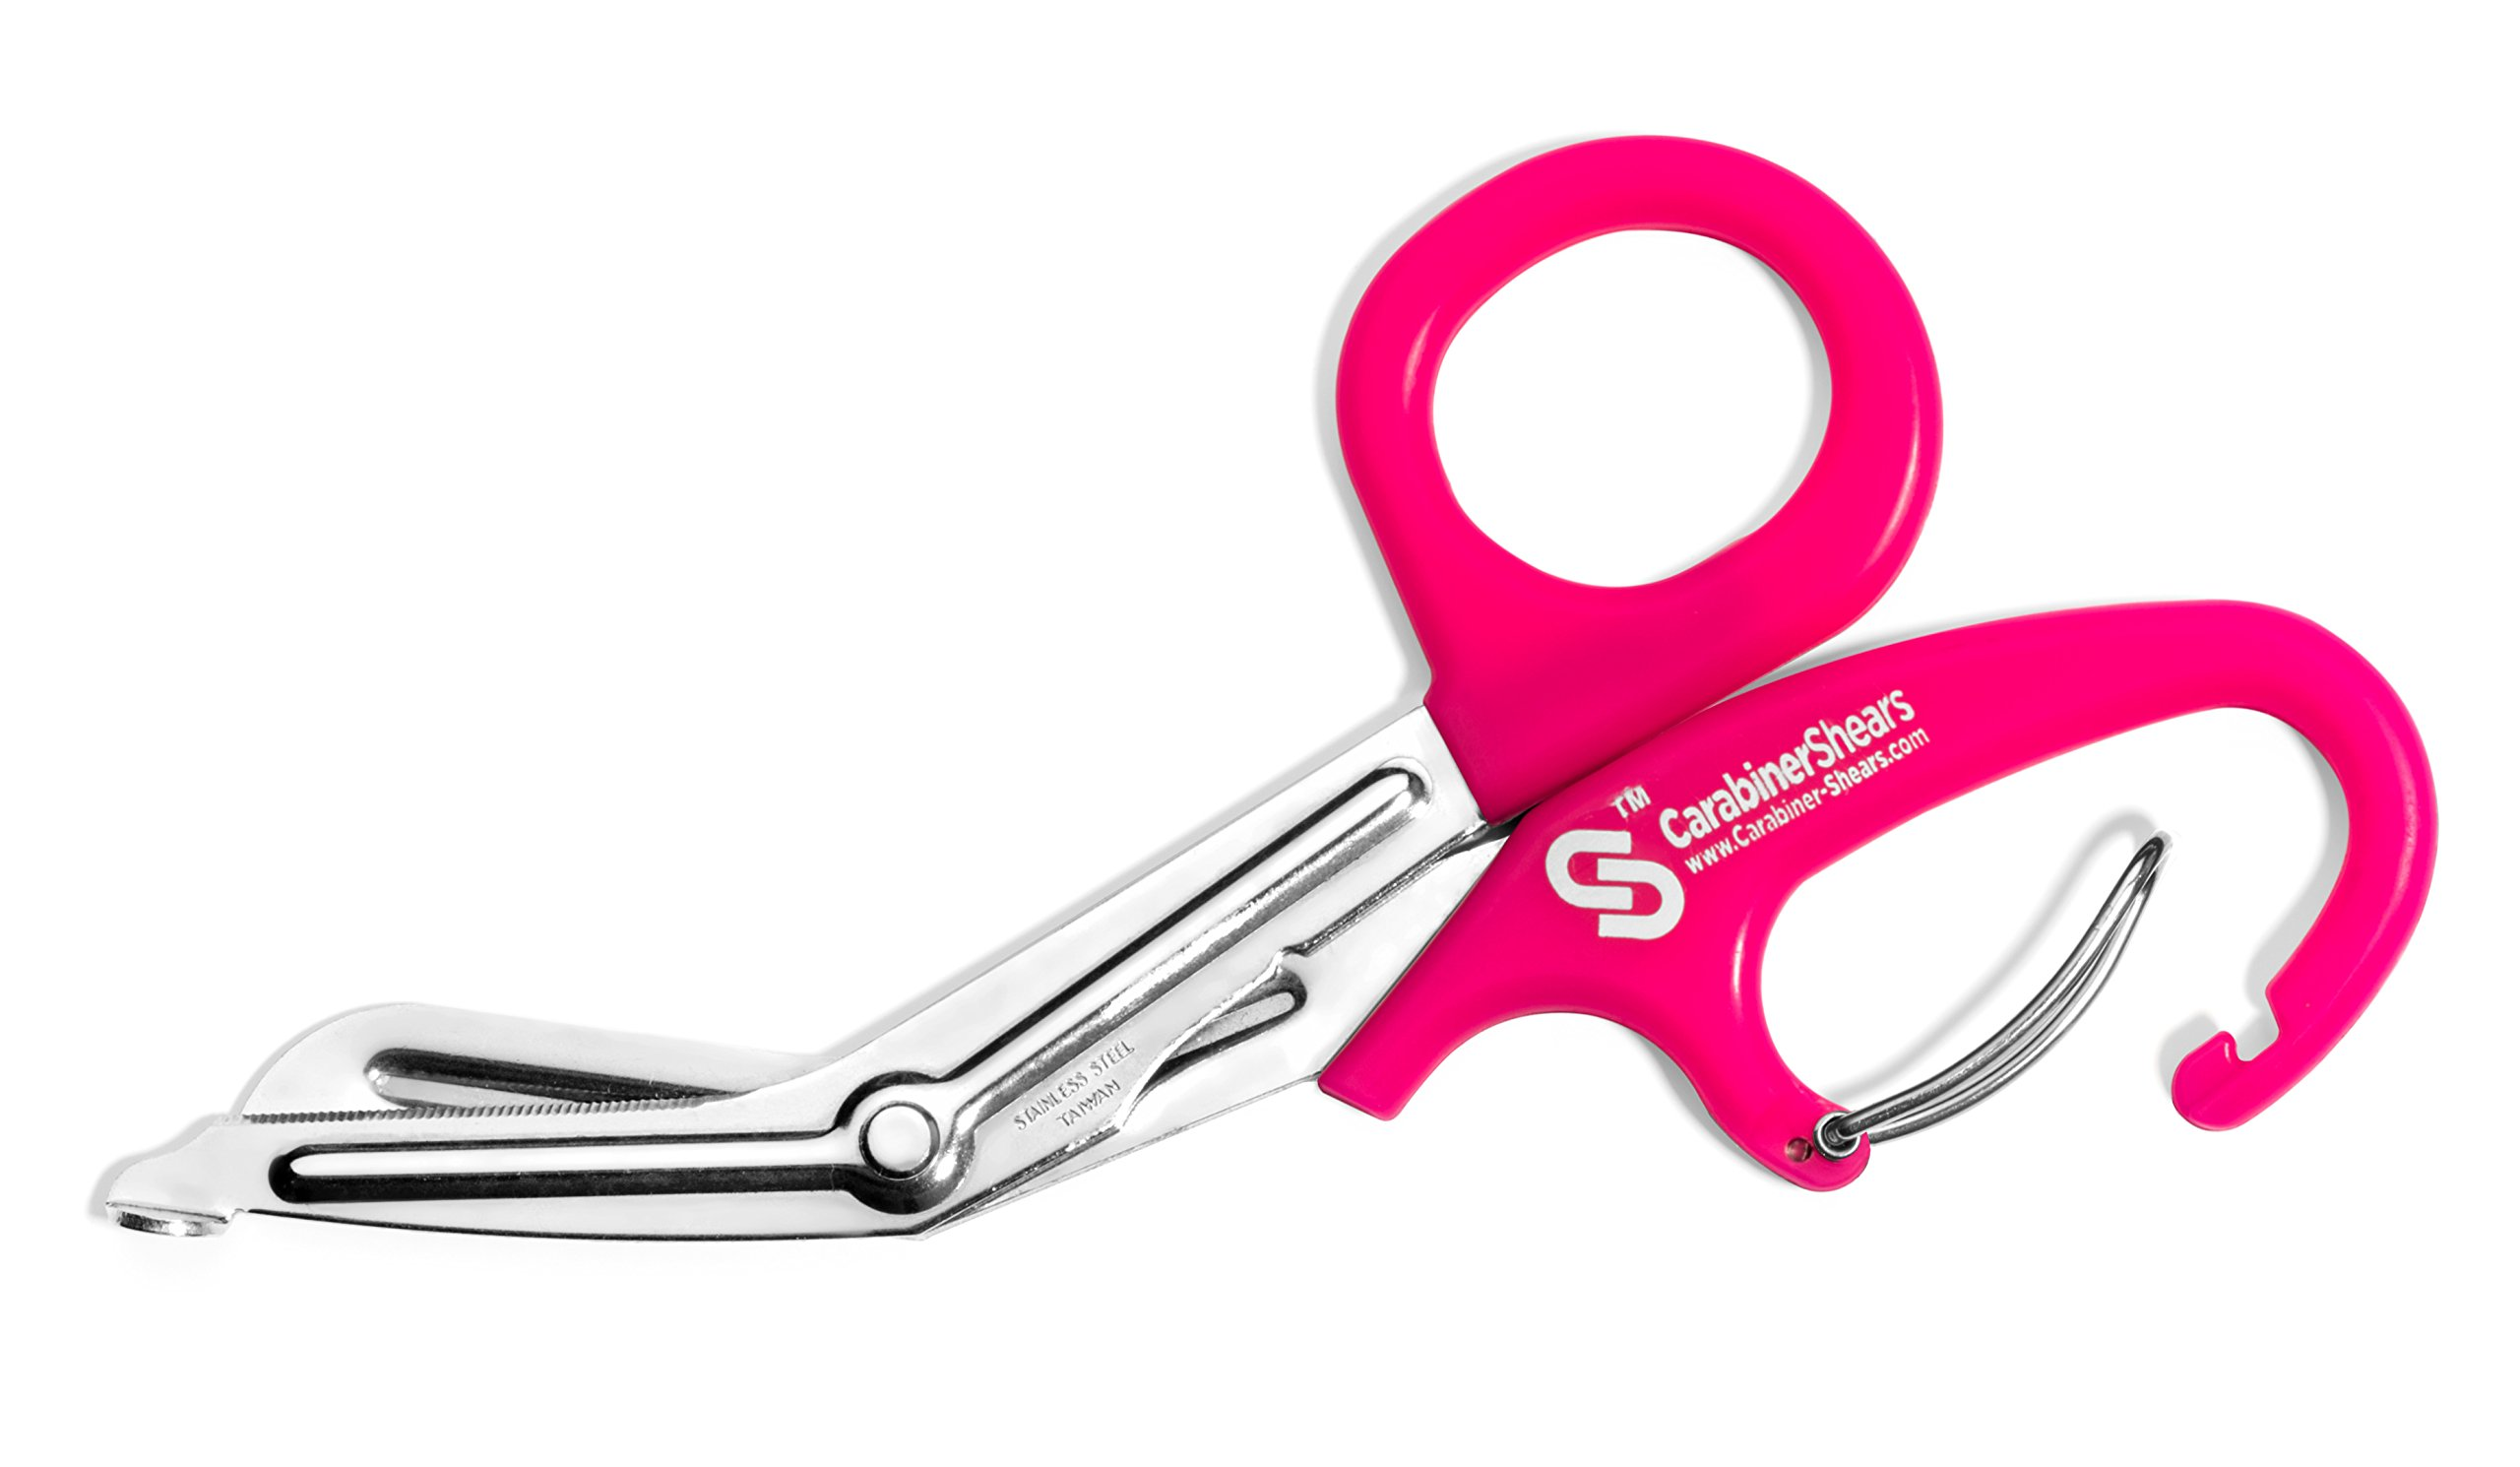 EMT Trauma Shears with Carabiner - Stainless Steel Bandage Scissors for Surgical, Medical & Nursing Purposes - Sharp Curved Scissor is Perfect for EMS, Doctors, Nurses, Cutting Bandages [Neon Pink]